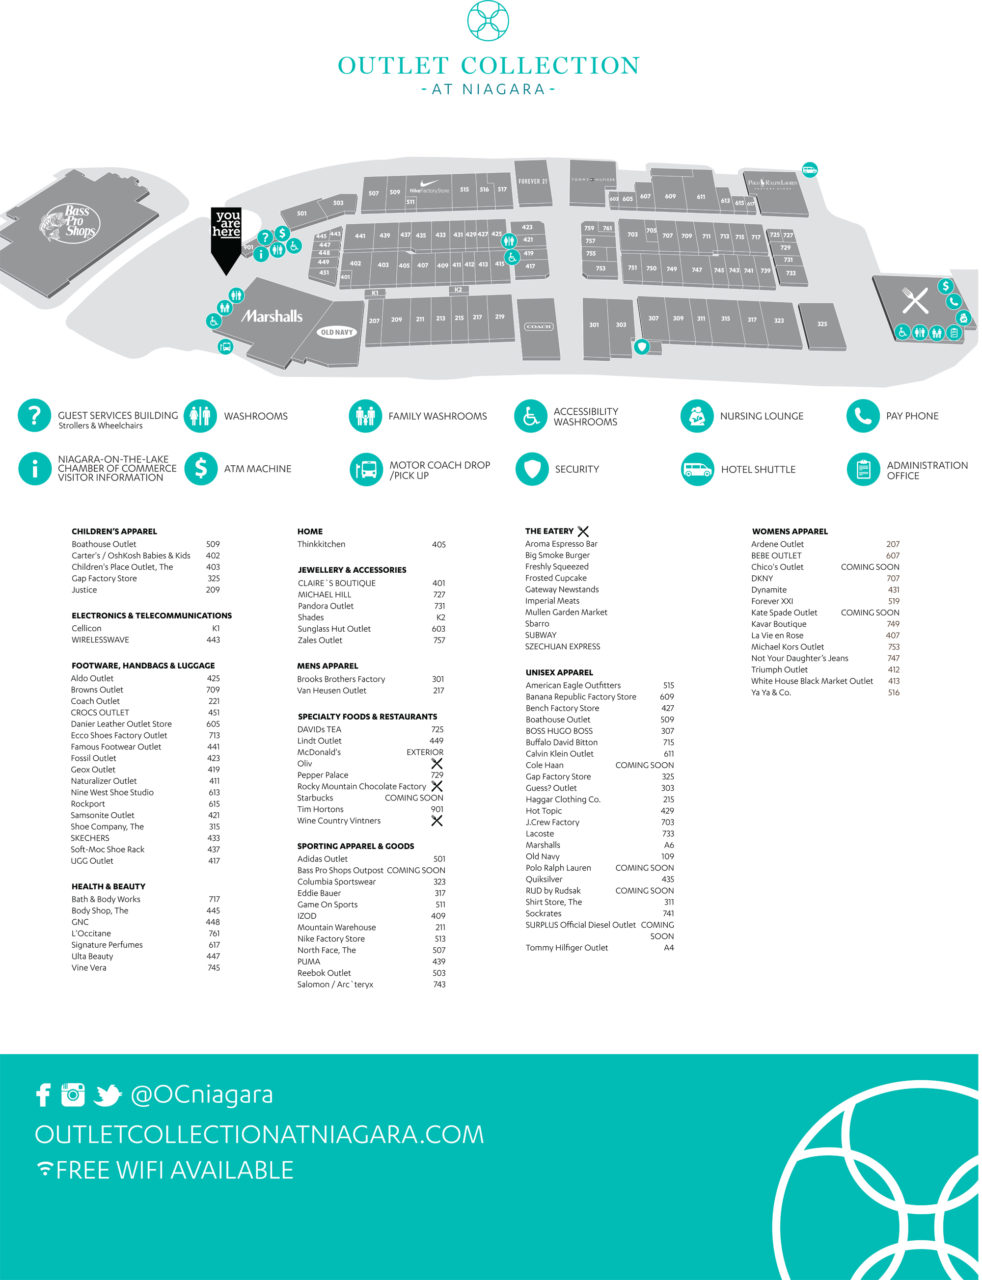 niagara falls outlet mall map Outlet Collection At Niagara Newest Information niagara falls outlet mall map